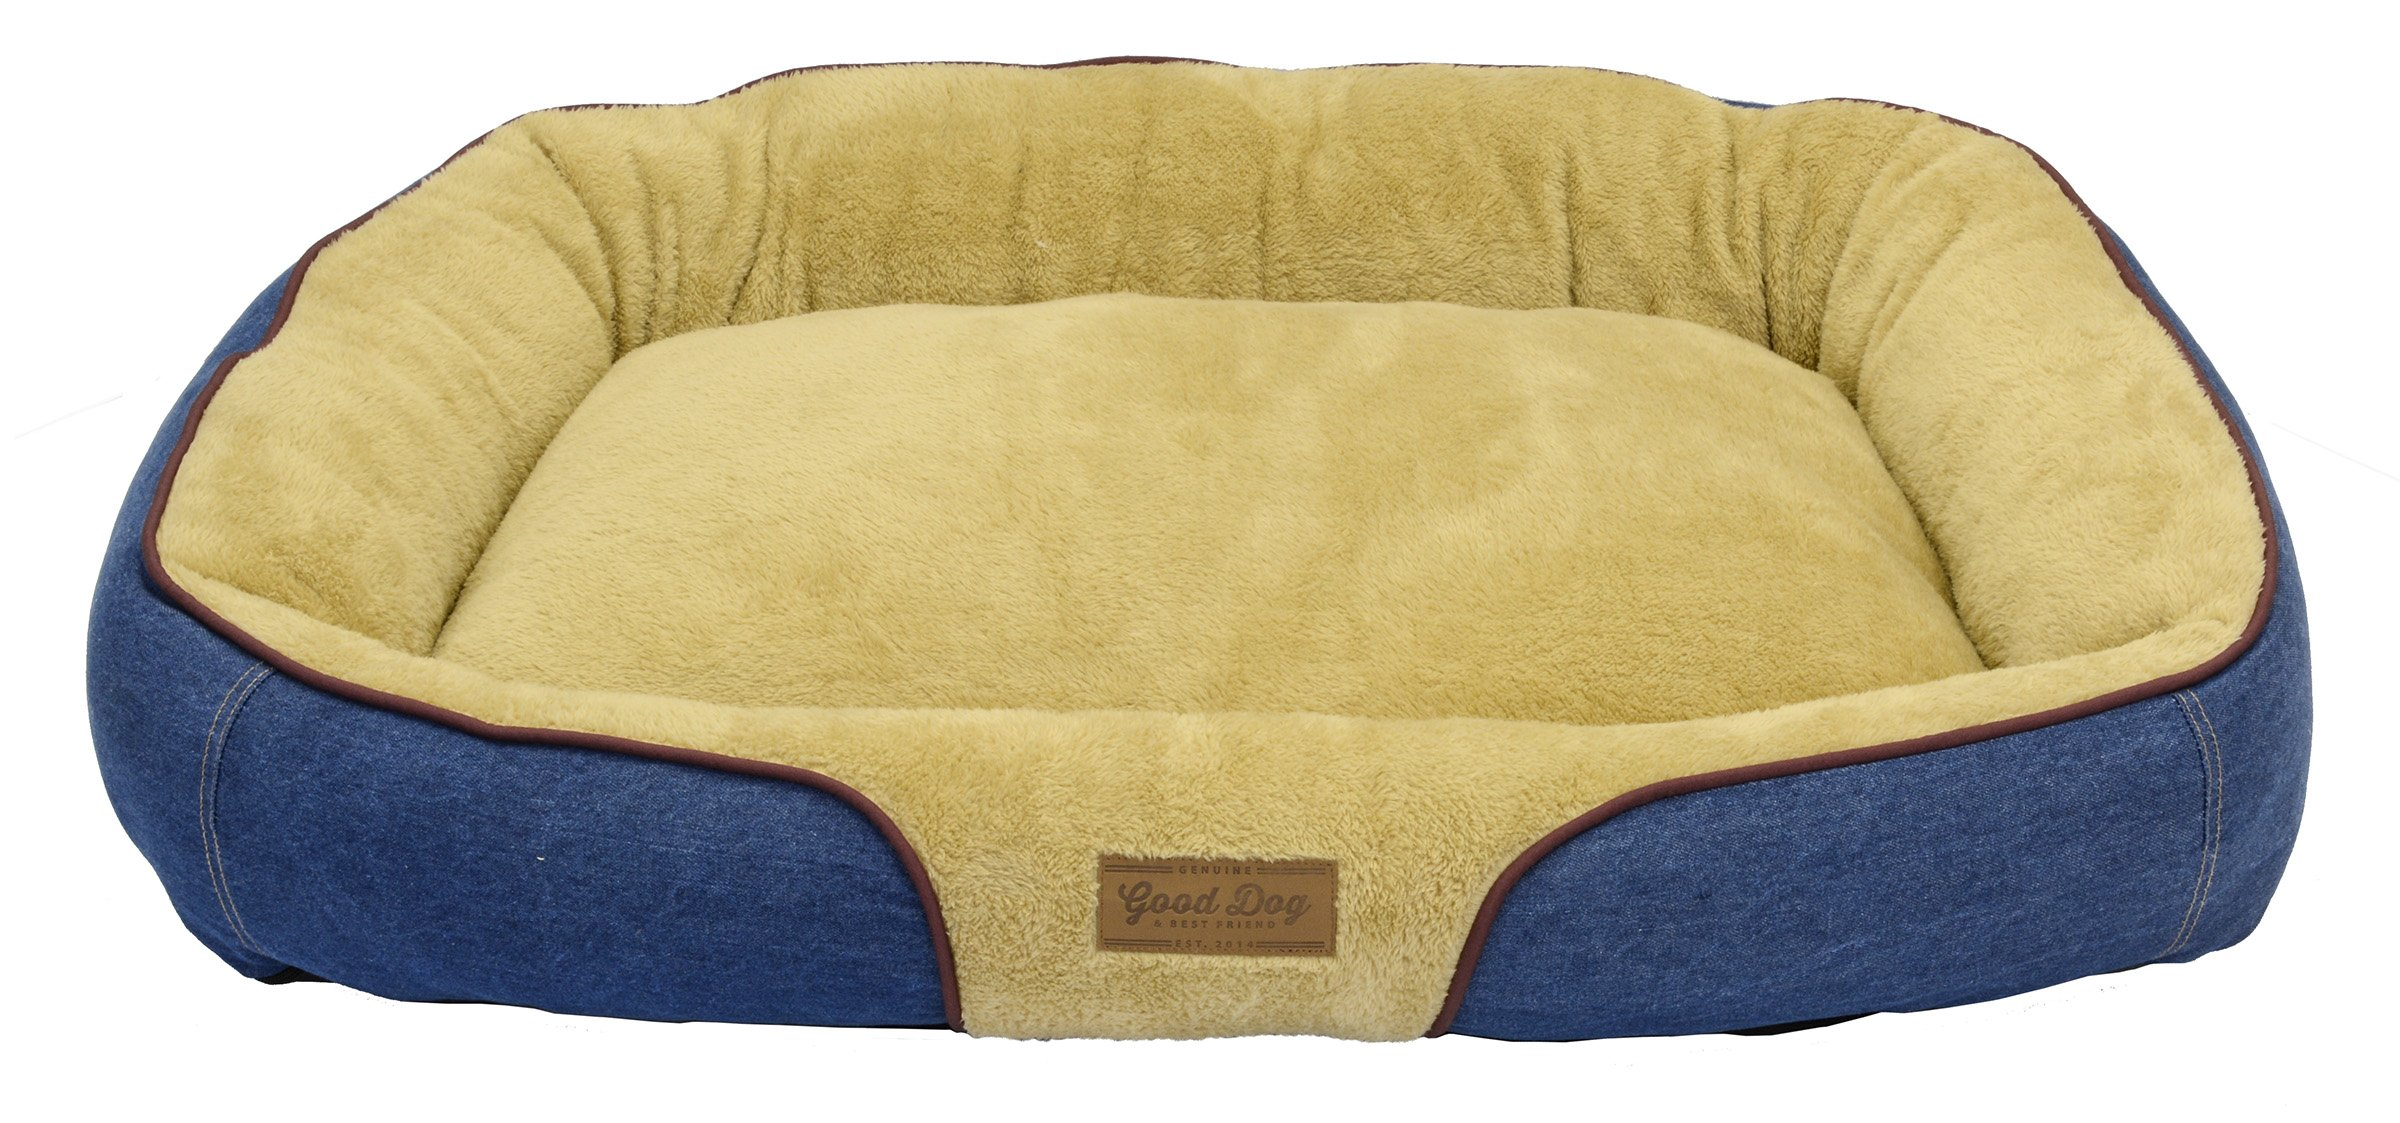 Dallas Manufacturing Co. 34''X25'' large Bolster Dog Bed with Wine Piping